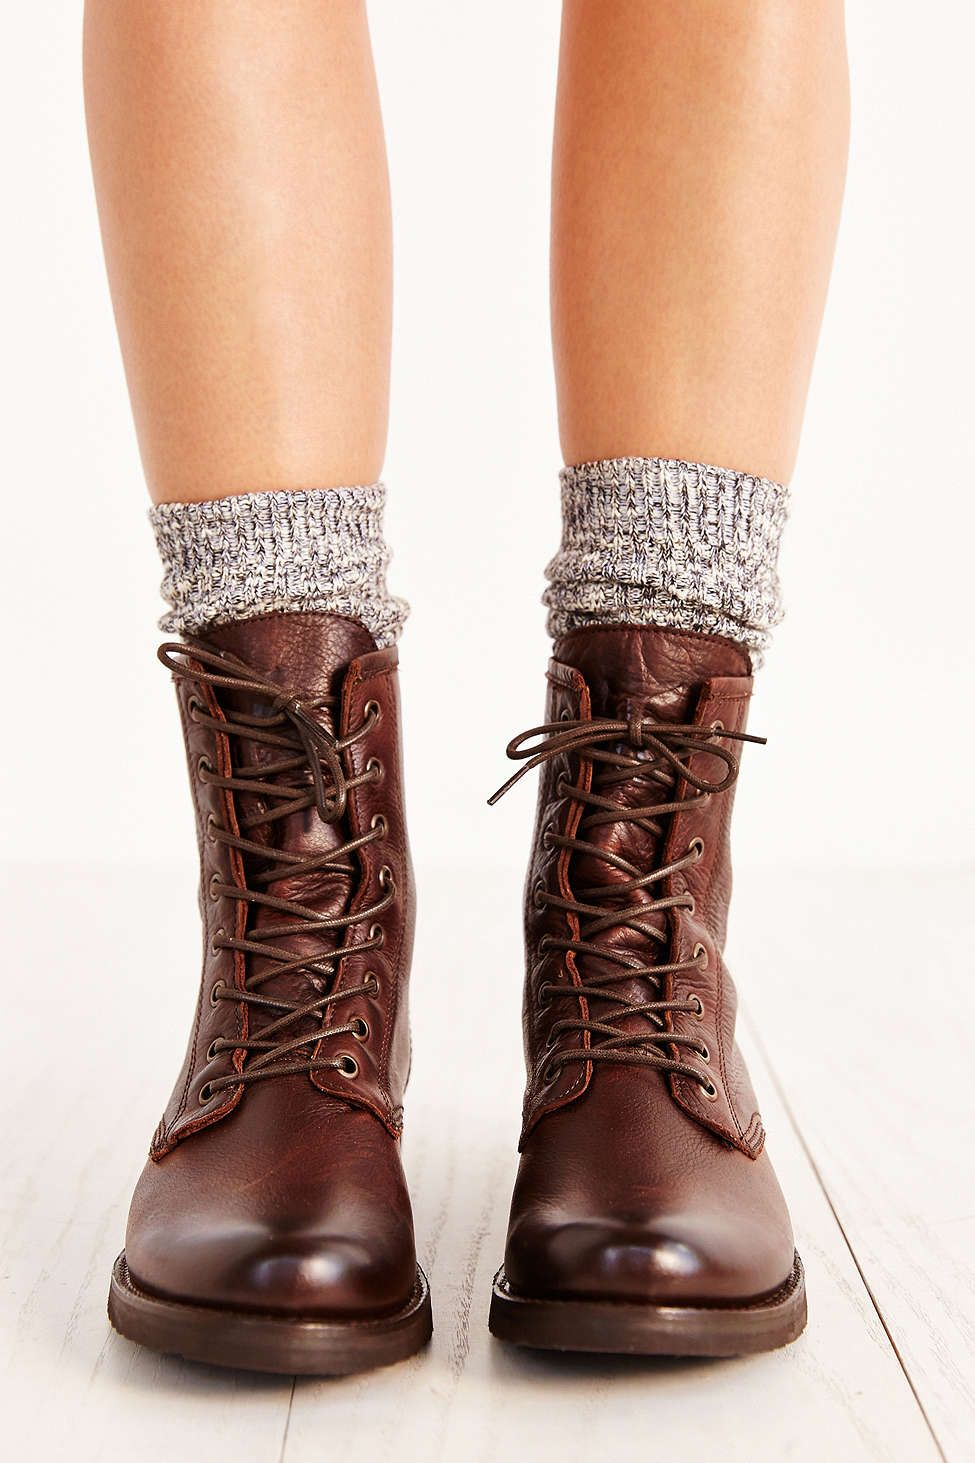 69236070f You just can't go wrong with a pair of good old leather boots. Urban  Outfitters Frye Veronica Combat ...